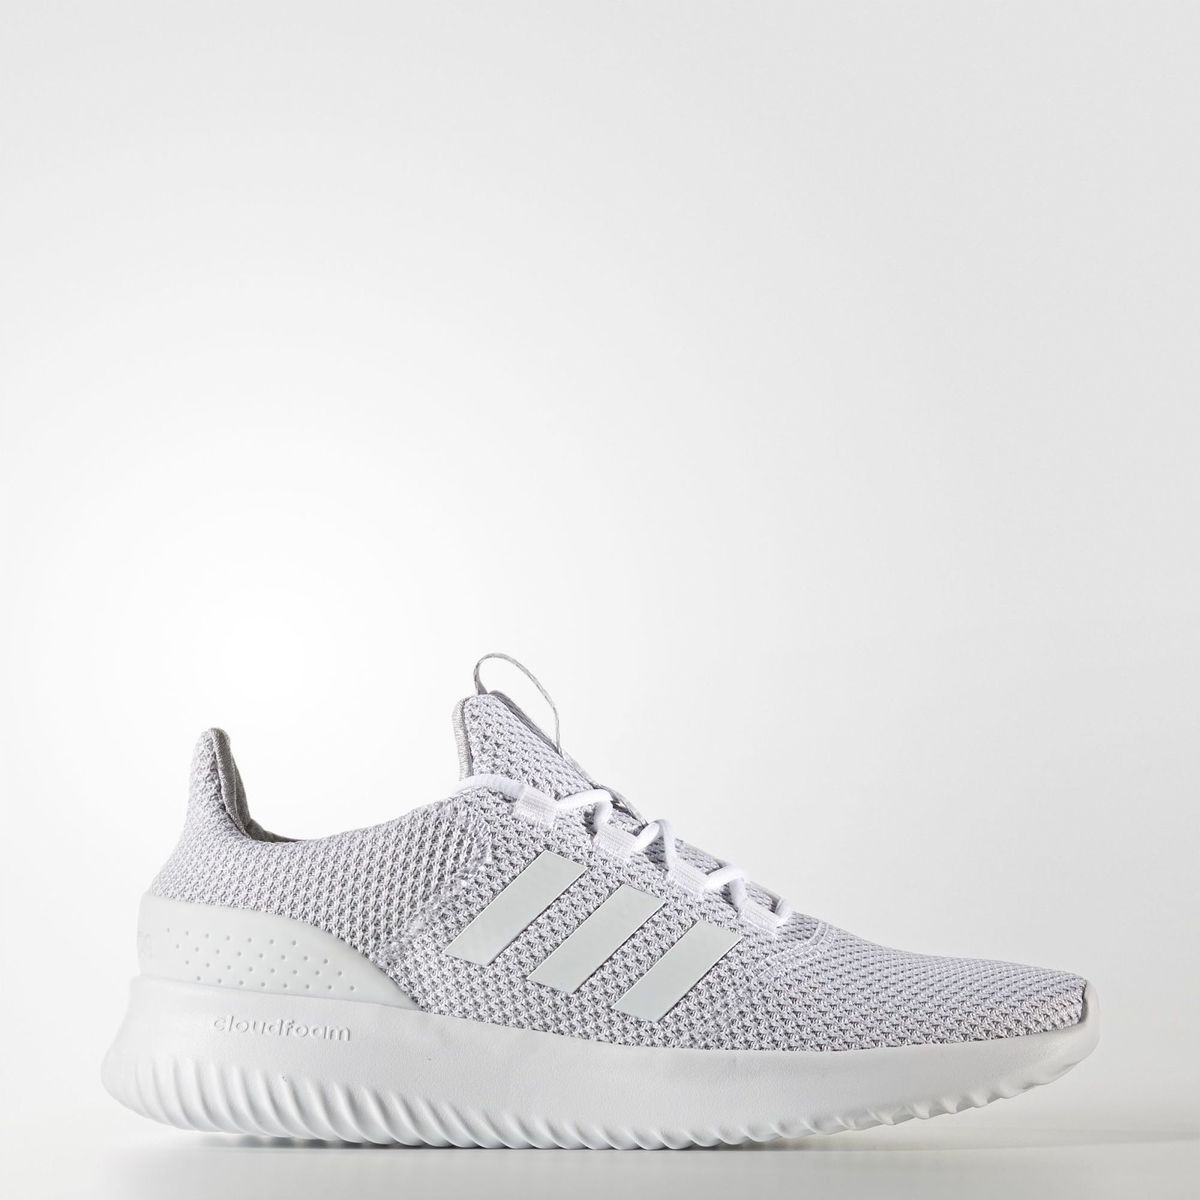 adidas cloudfoam ultimate